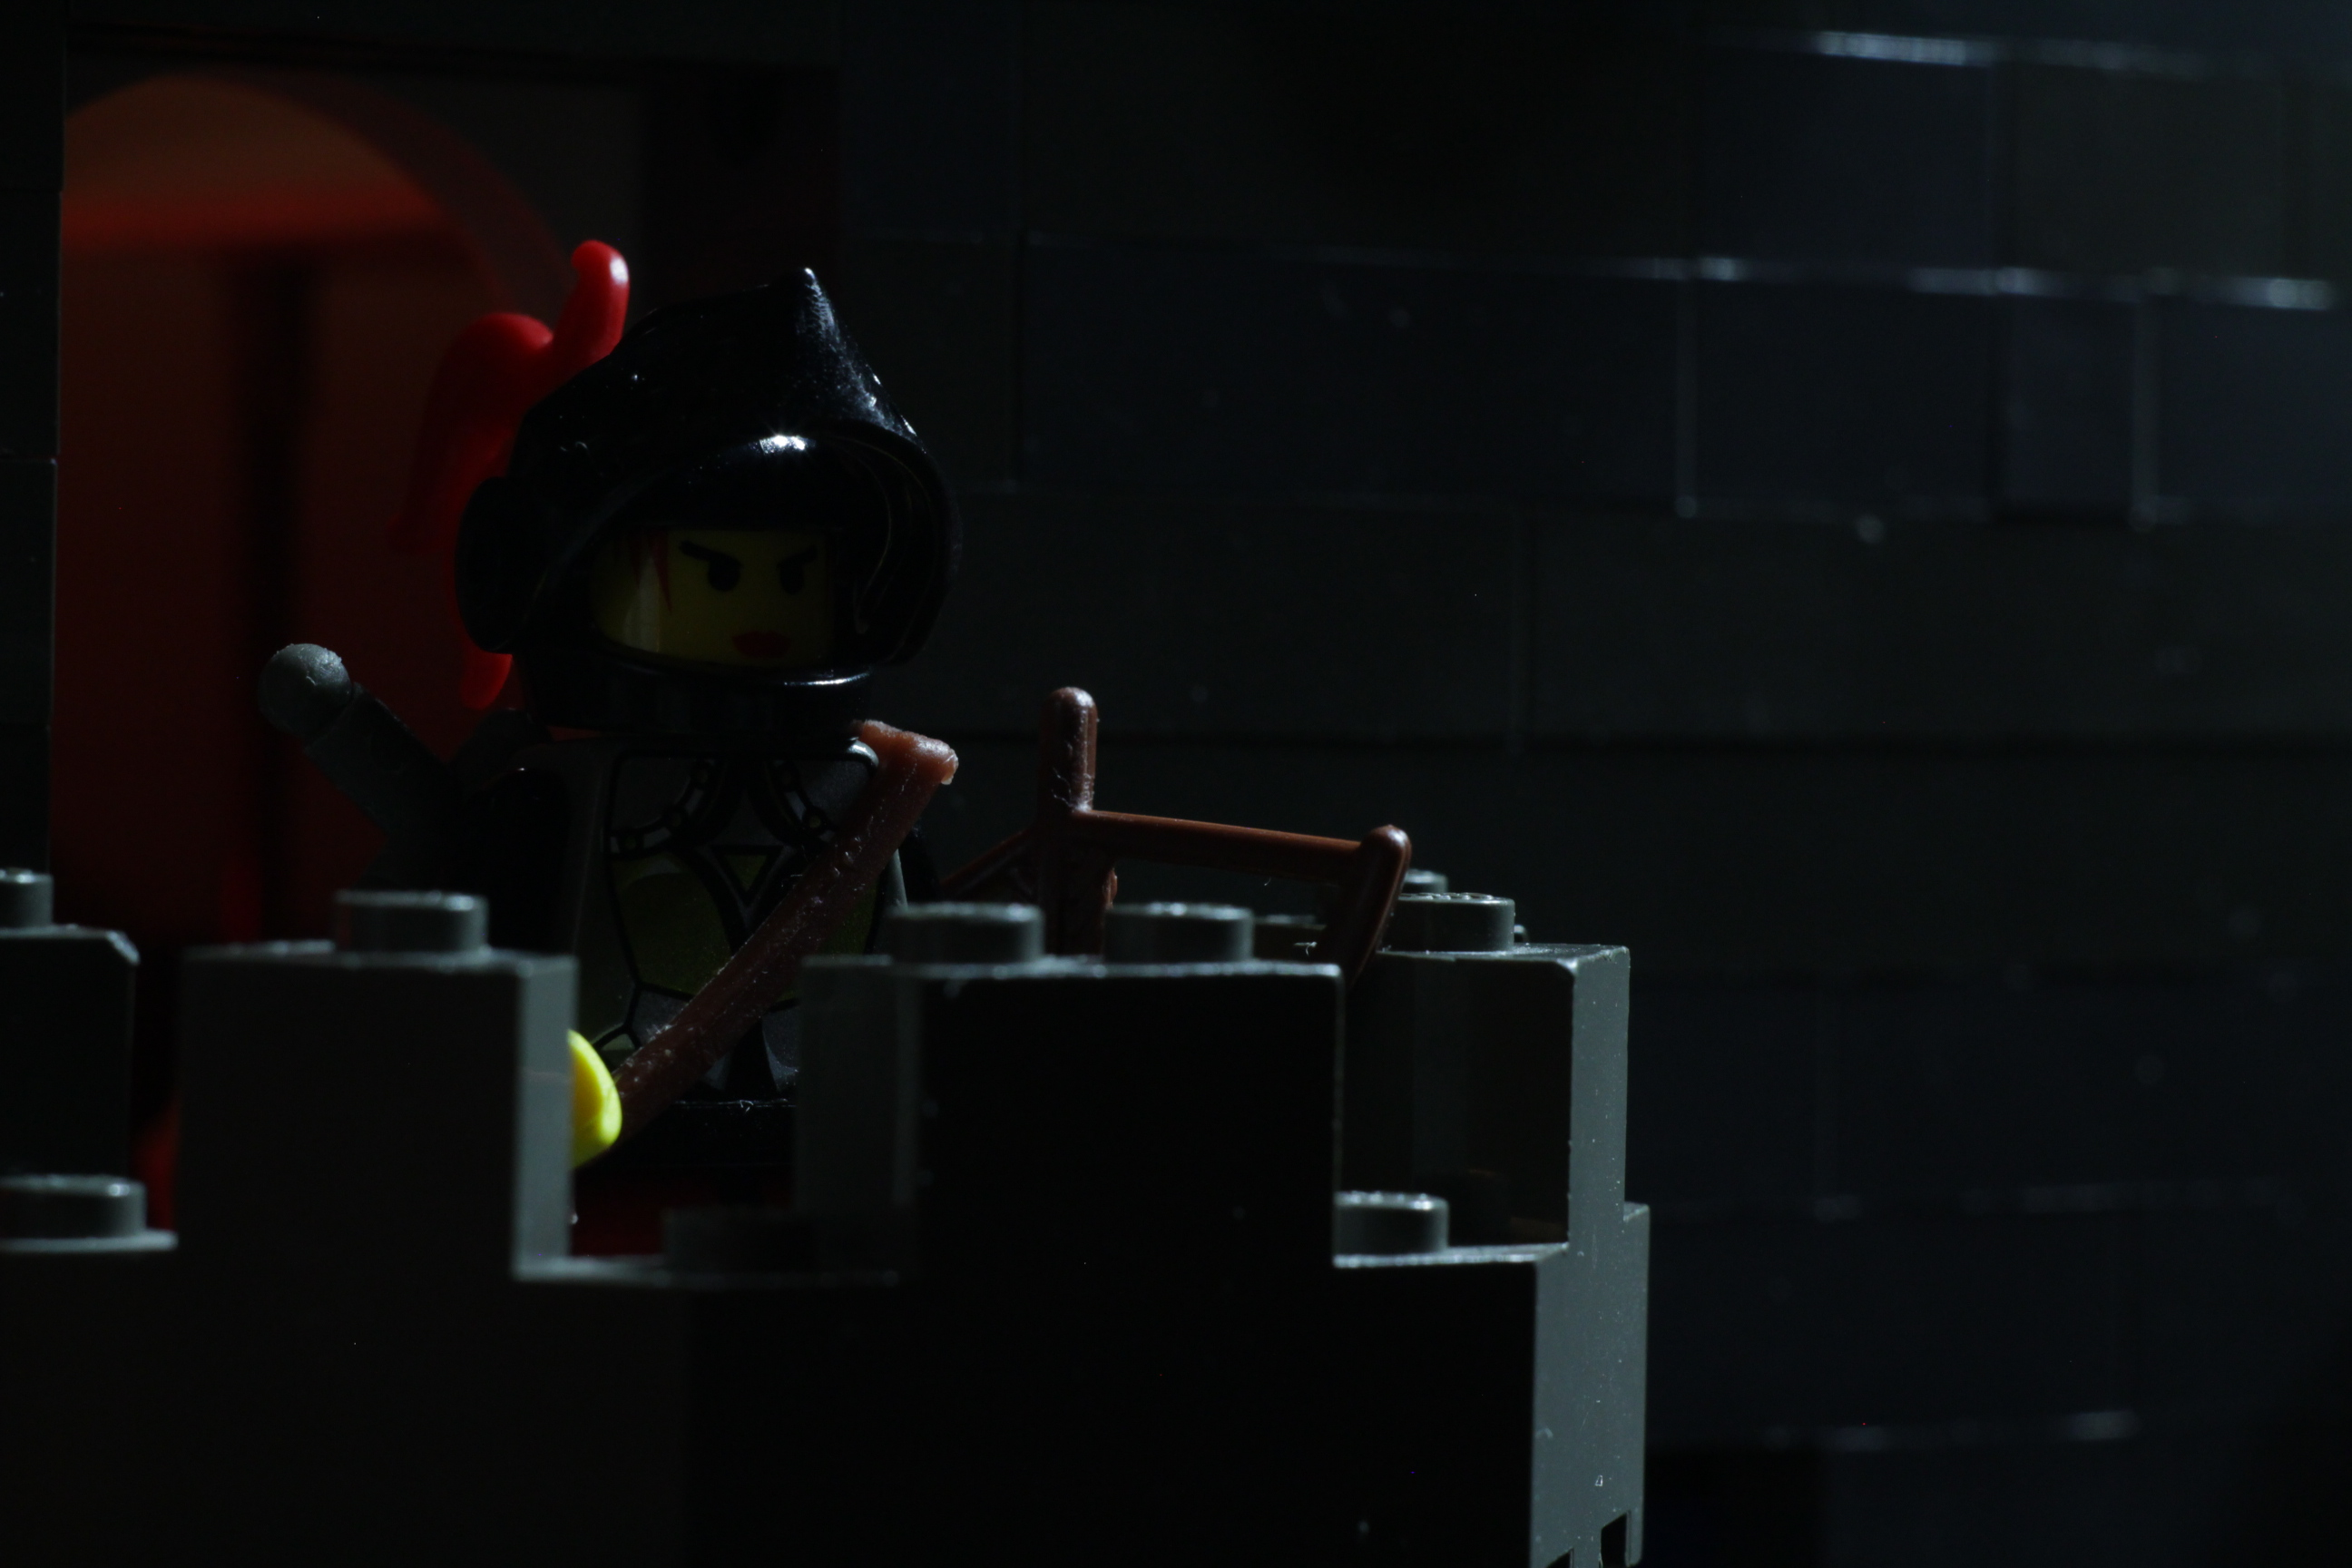 http://bricksafe.com/files/rioforce/Brickfilming/princess-storm/DSC_51318.jpg